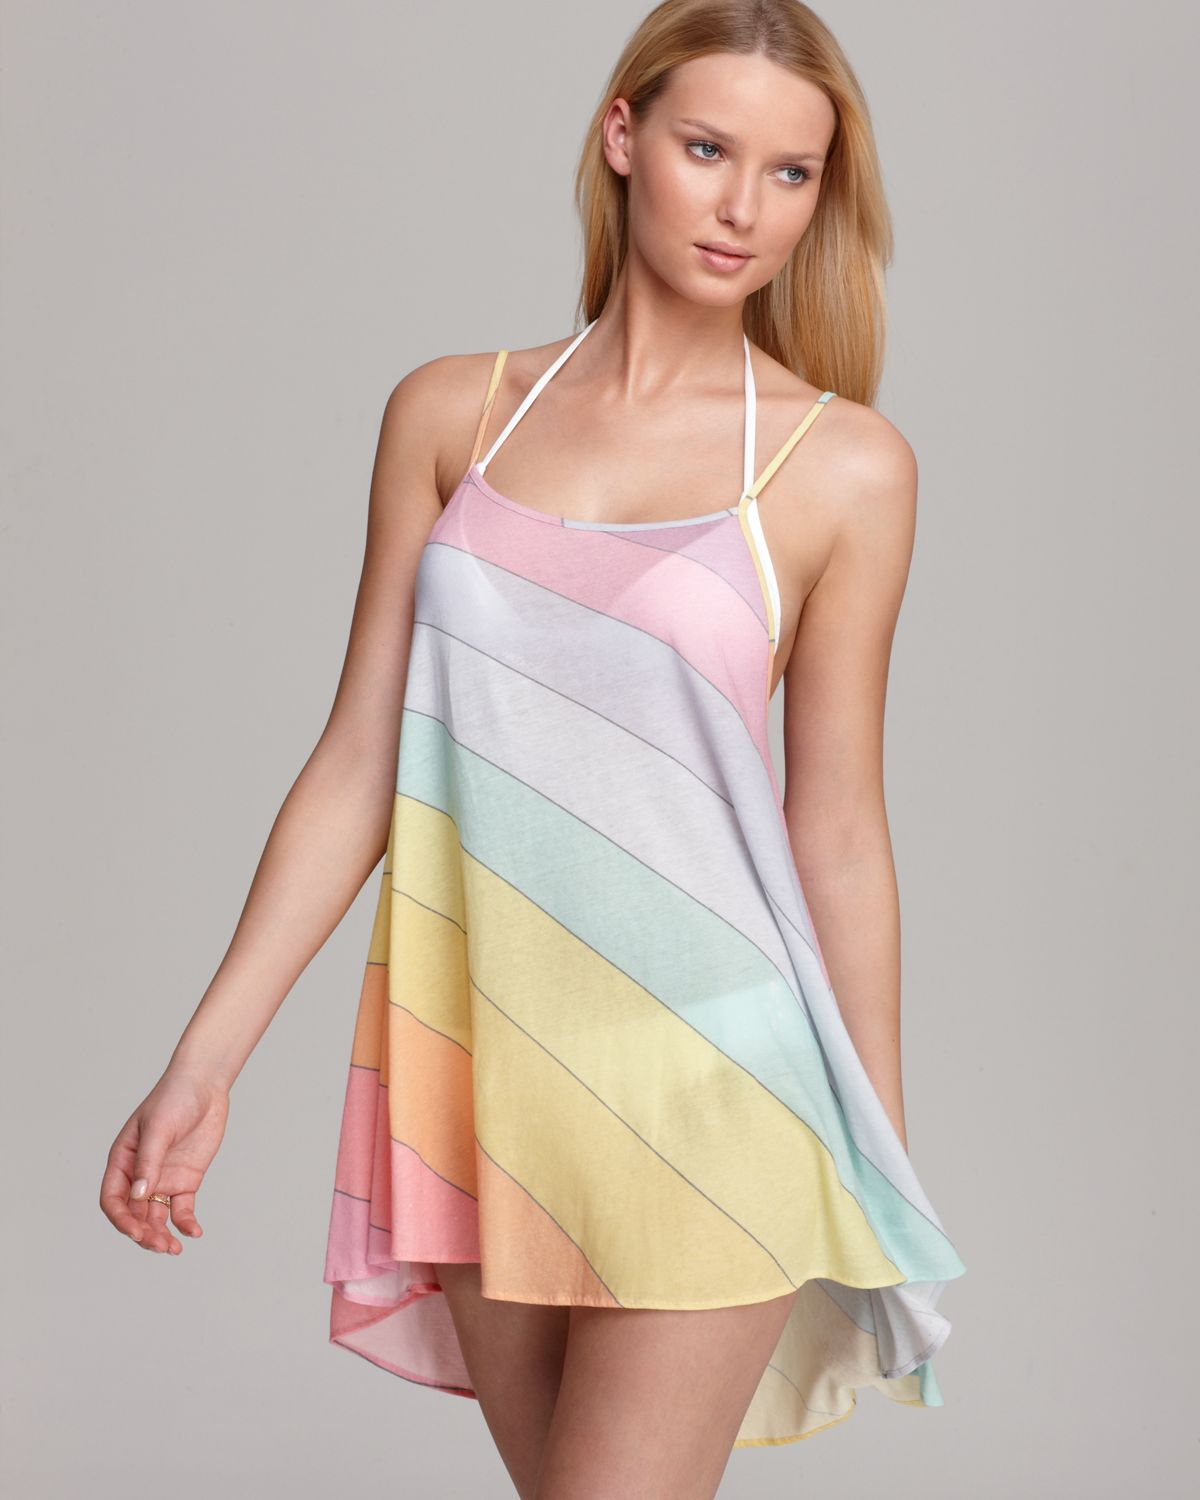 d97bfbcb9bb57 Wildfox Vintage Rainbow Swimsuit Cover Up in Pink - Lyst